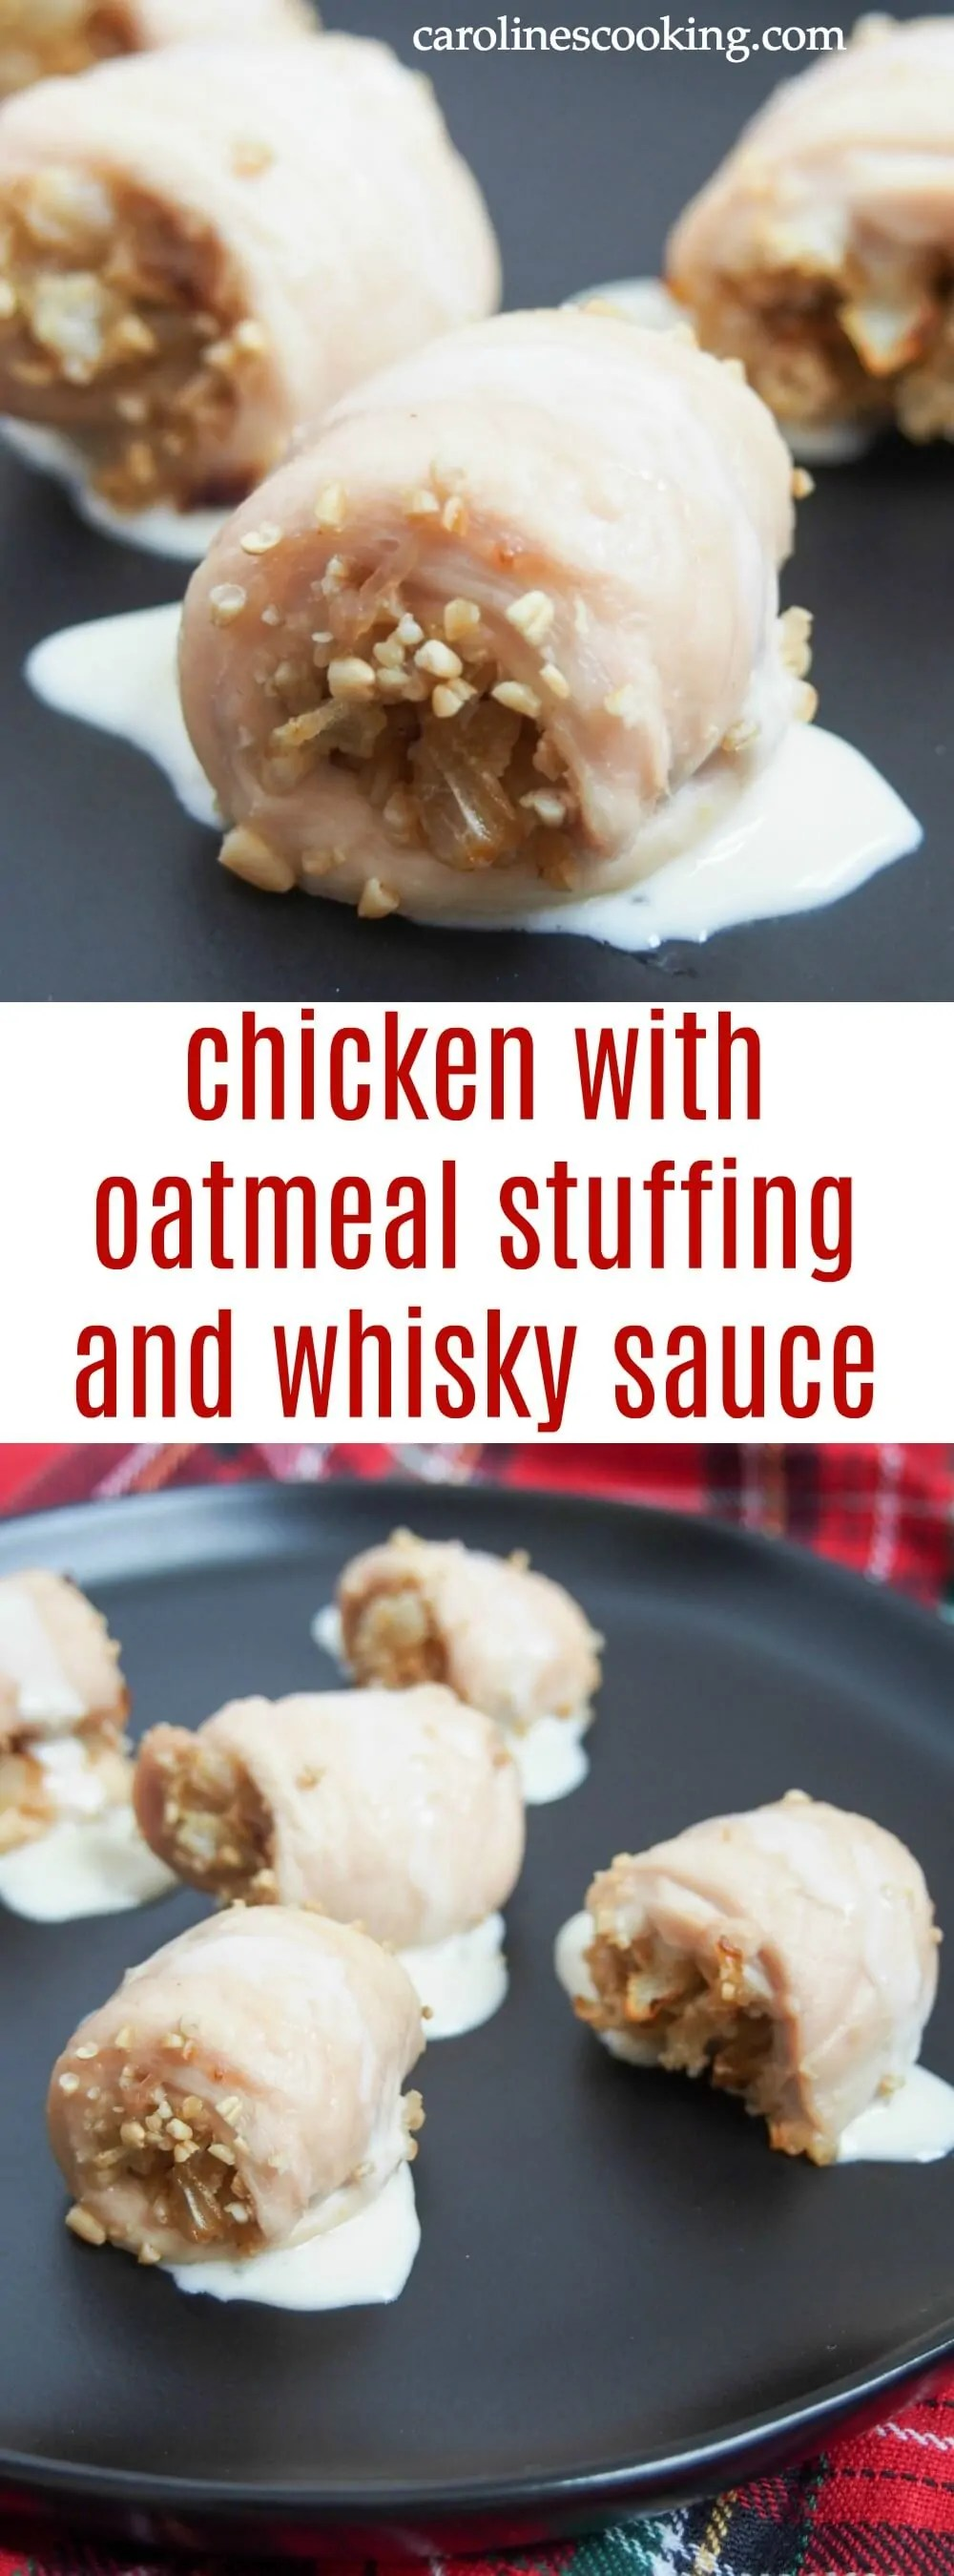 This chicken with oatmeal stuffing and whisky sauce is easy to prepare and with delicate, tasty flavors. It would be a perfect appetizer for Burns Night and so much more. #Scottish #whisky #chicken #appetizer